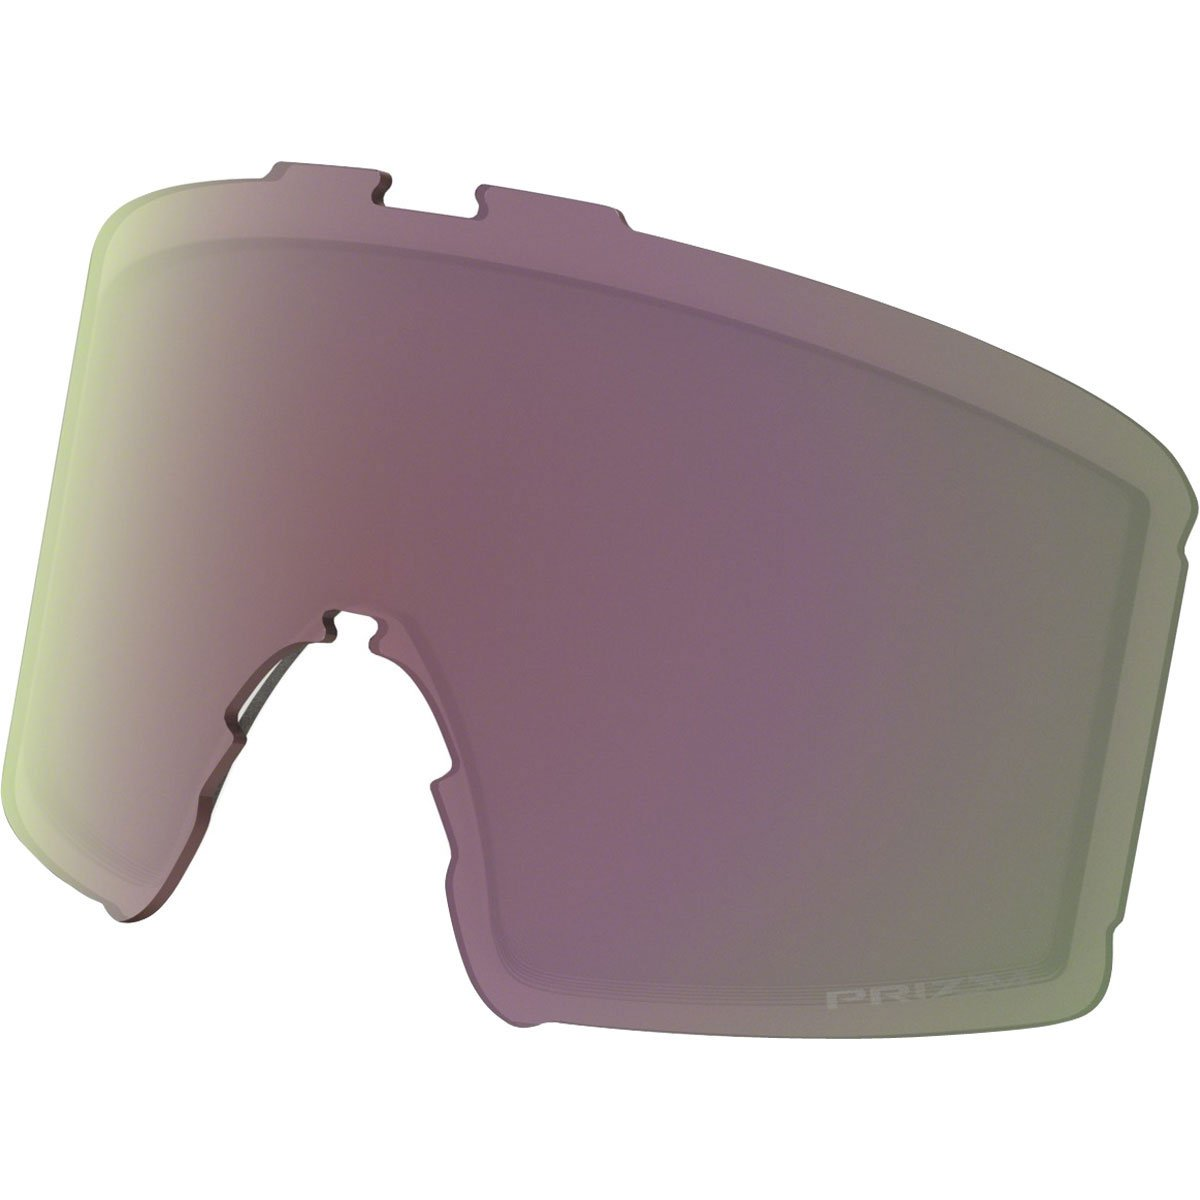 Oakley Men's Line Miner Snow Goggle Replacement Lens, Prizm Hi Pink, Prizm Hi Pink, Large by Oakley